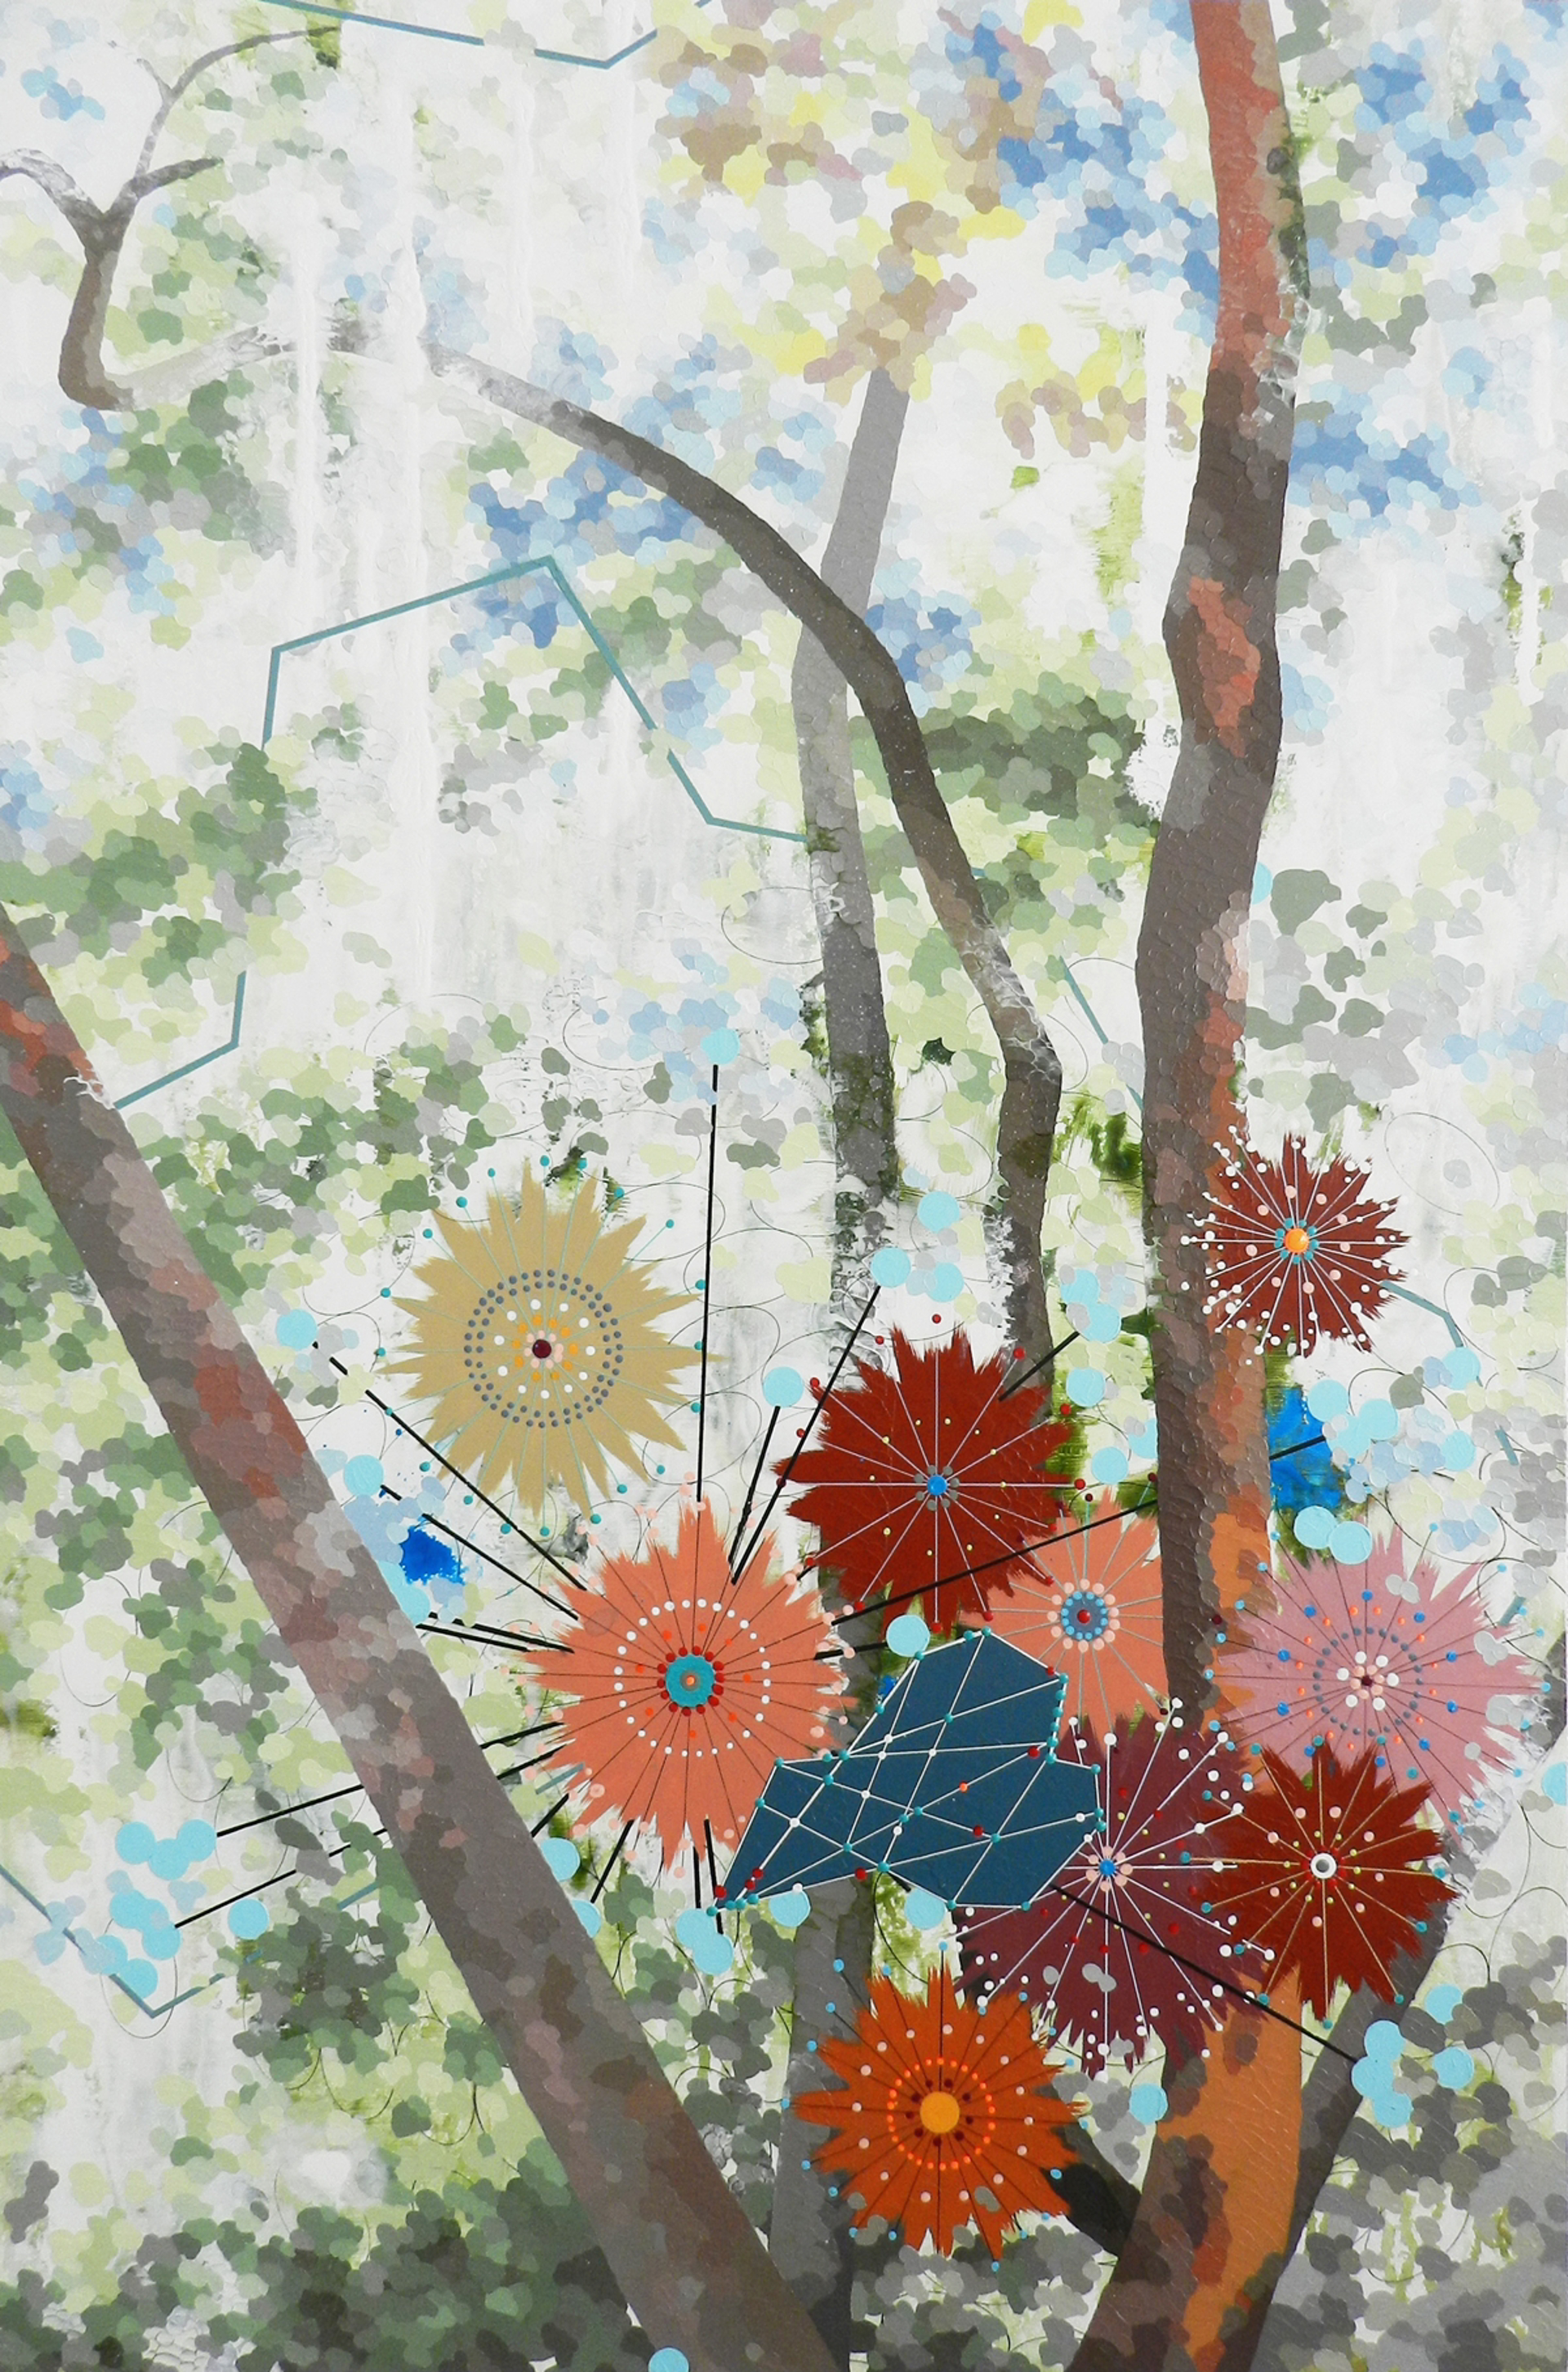 Flora by Second State: Elaine Coombs and Heather Patterson